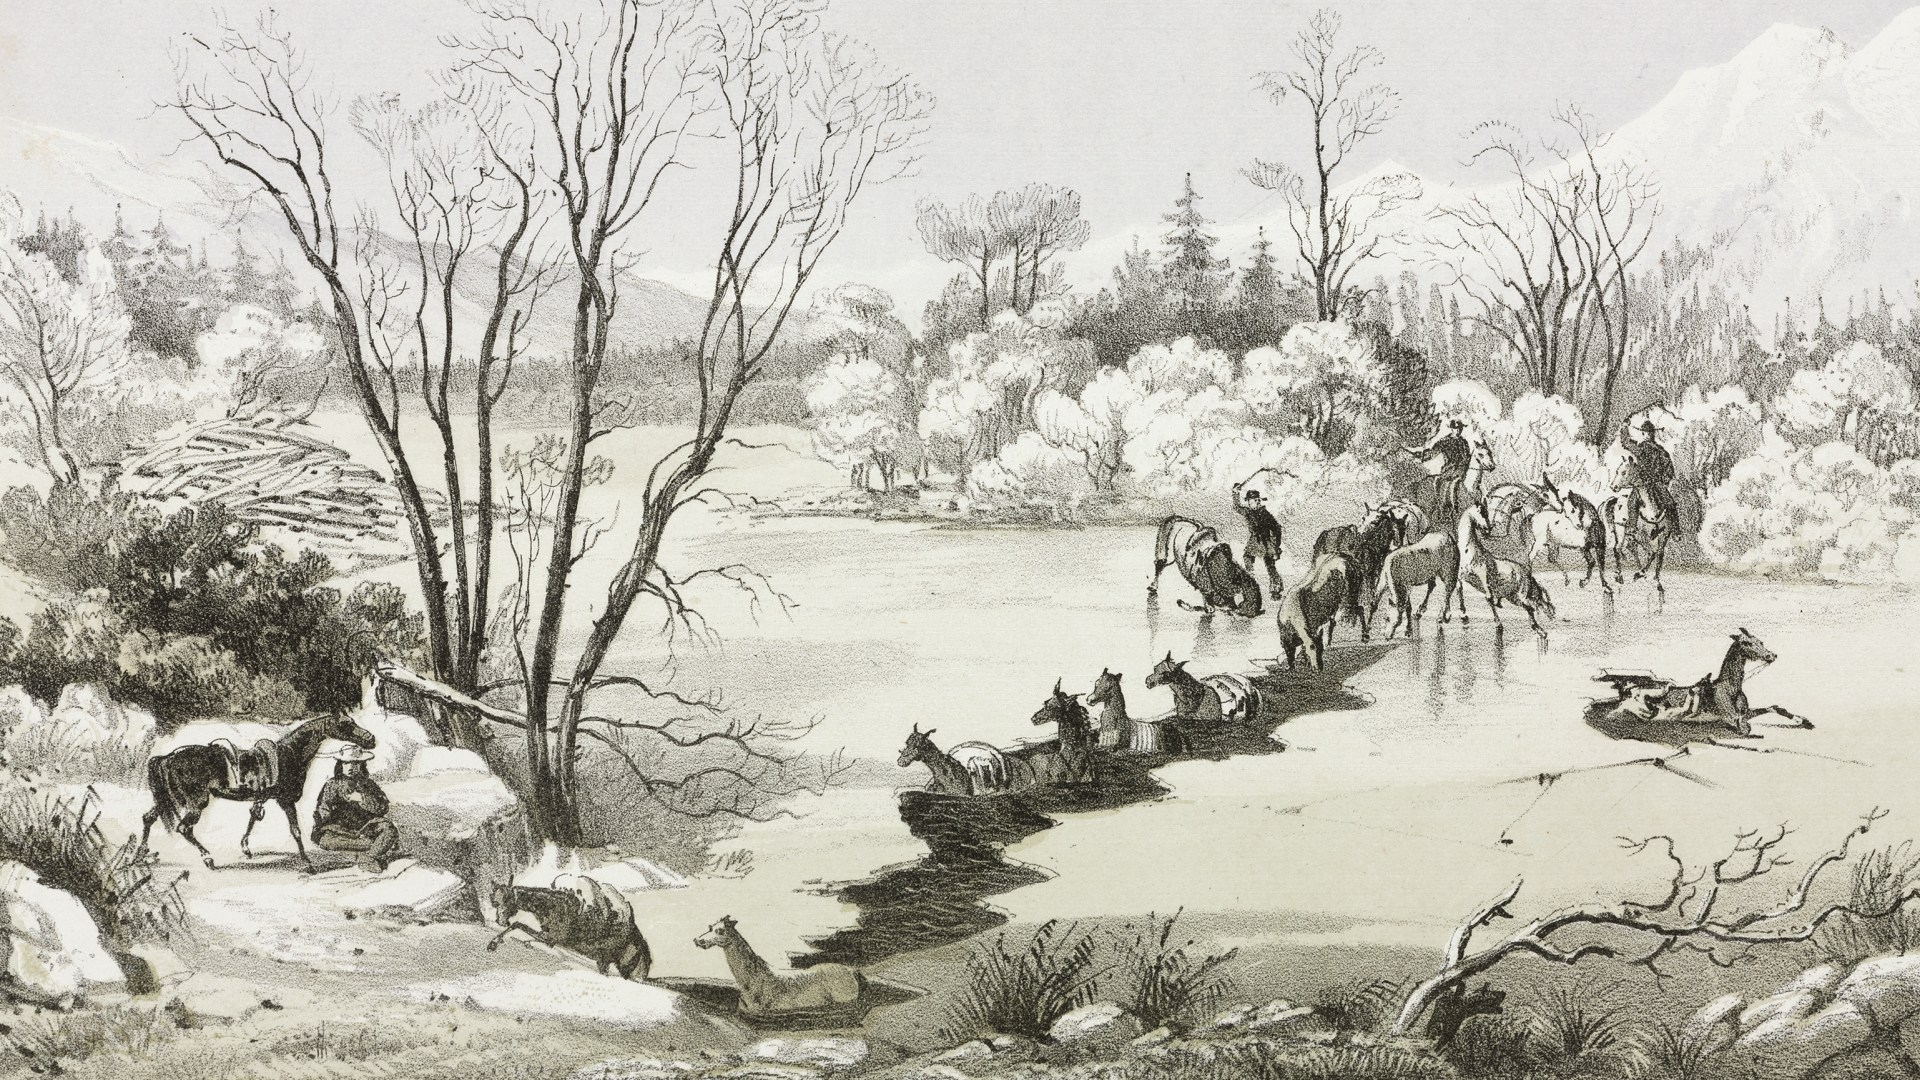 Explorers crossing the Hellgate River in Montana, 1854, where their horses fell into the frozen over river. (Credit: SSPL/Getty Images)